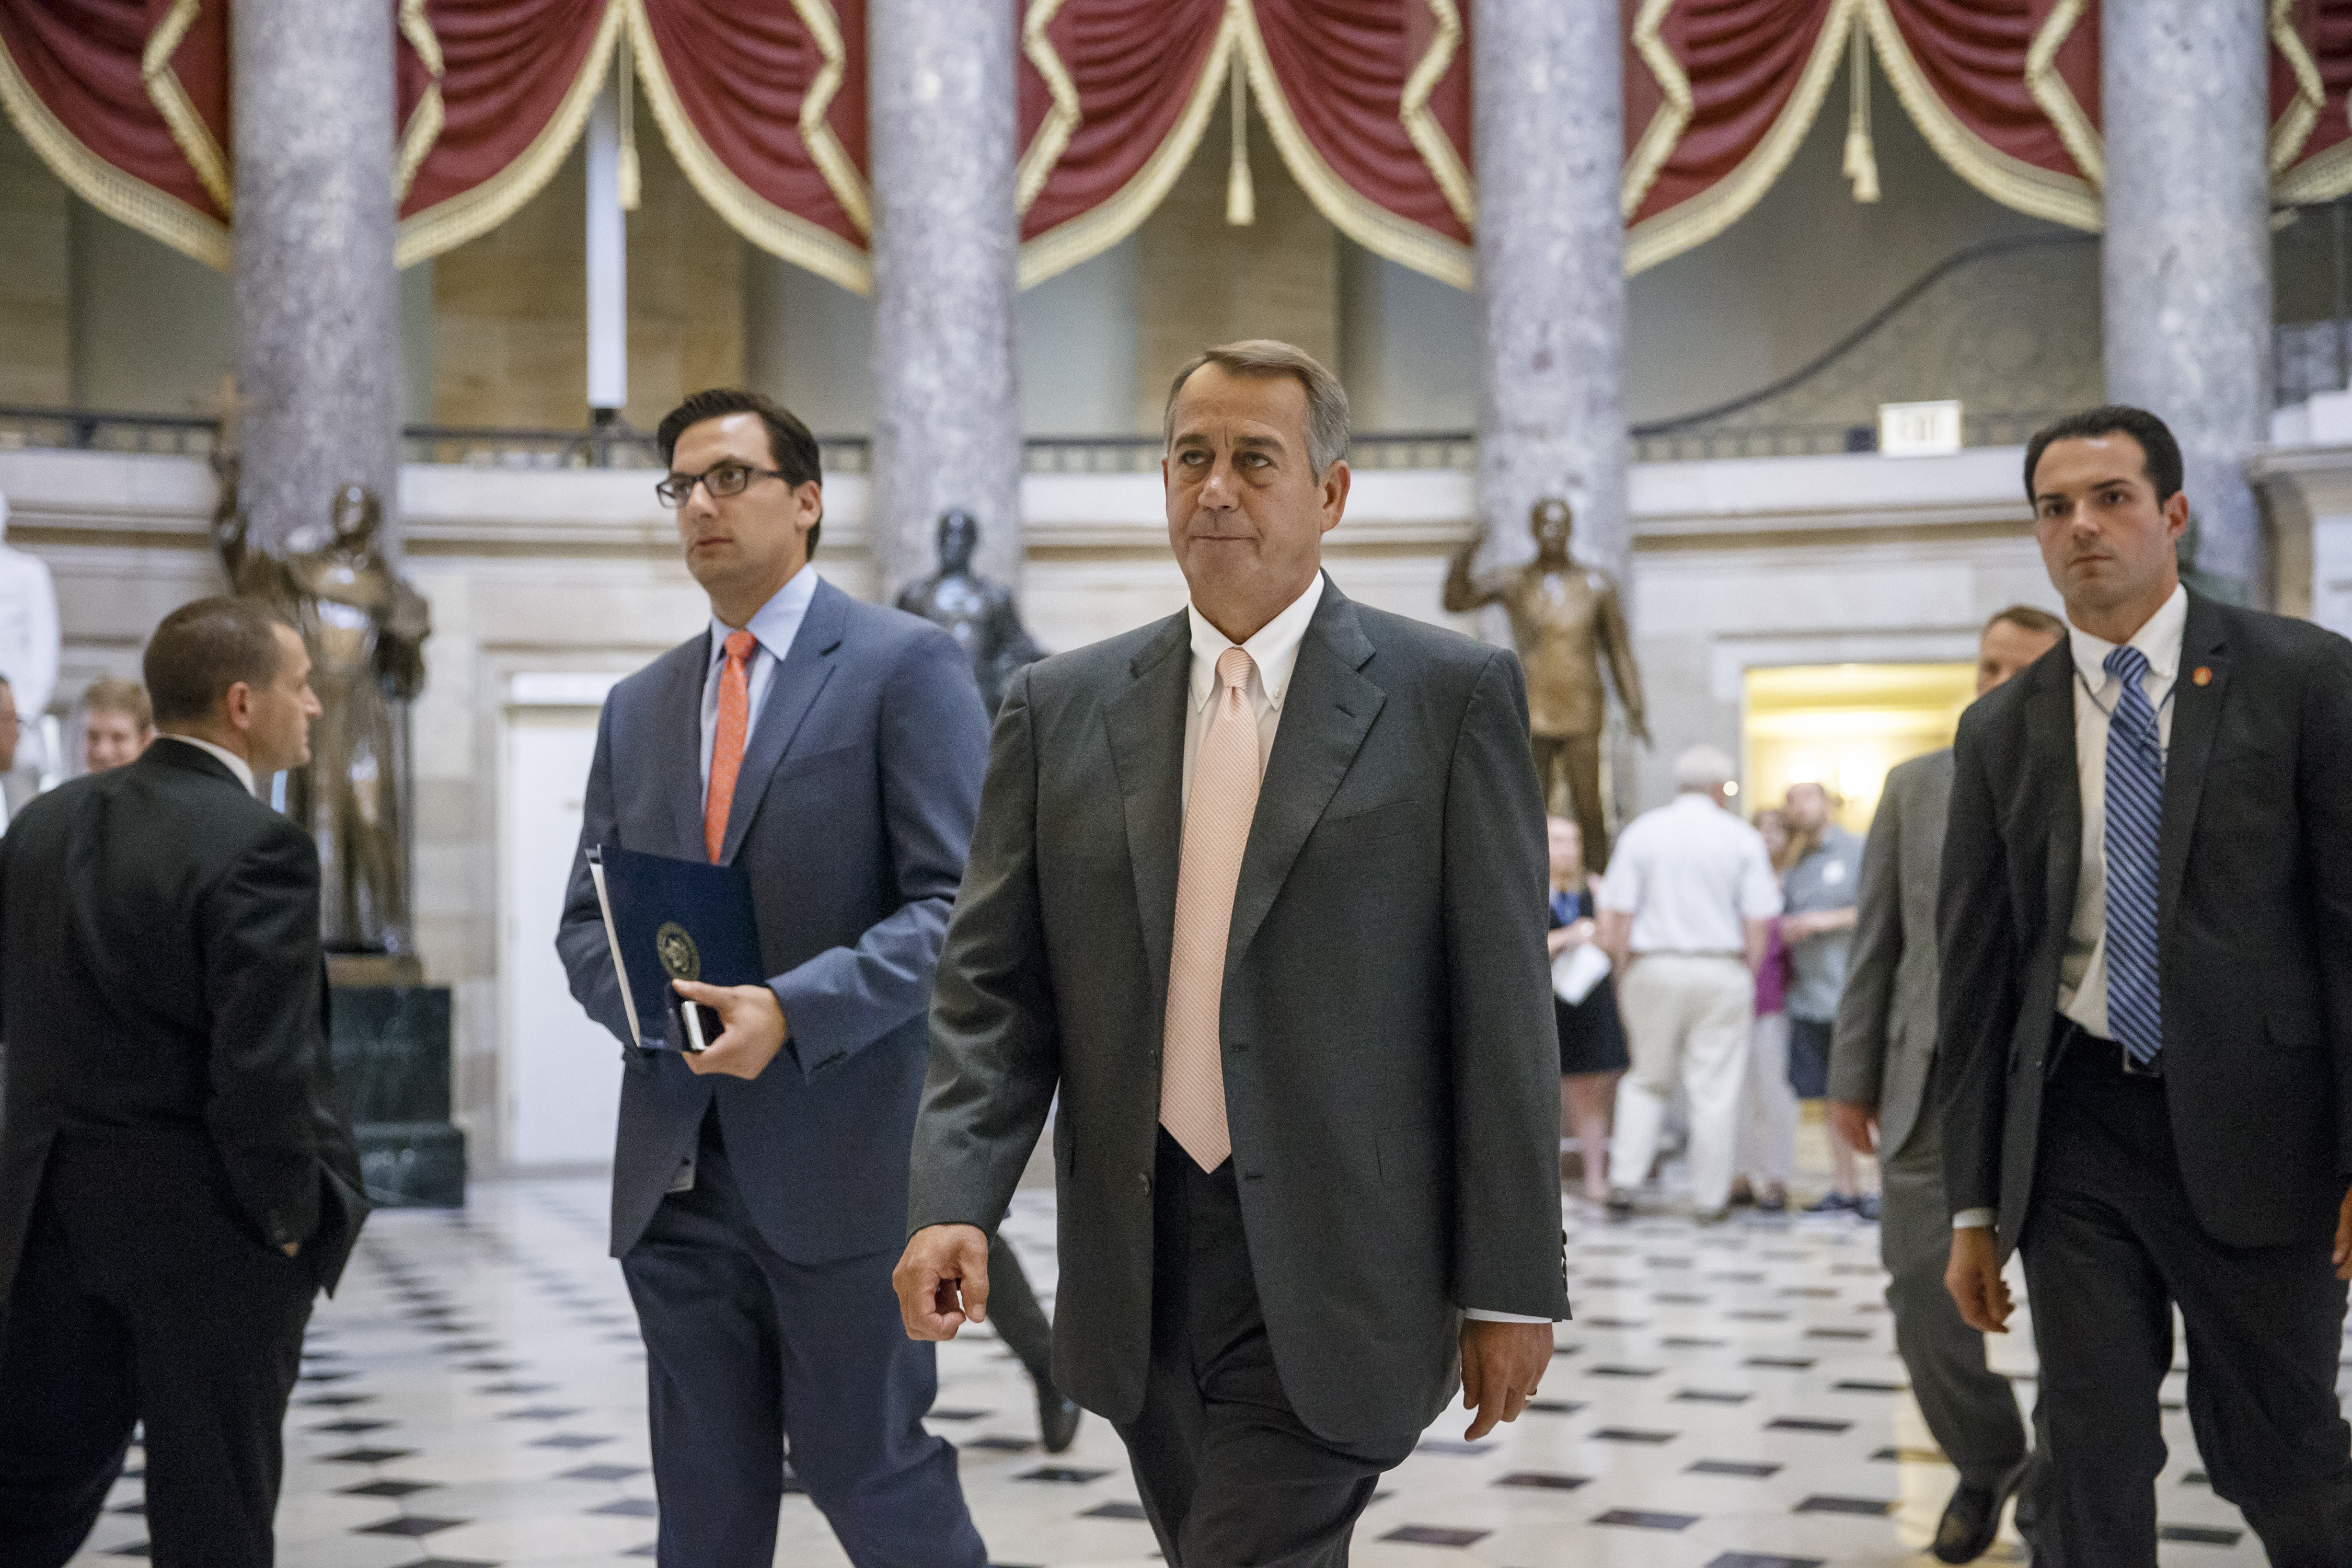 Speaker of the House John Boehner, who has voted dozens of times to kill Obamacare, is now suing President Obama for not strictly enforcing provisions of the law.